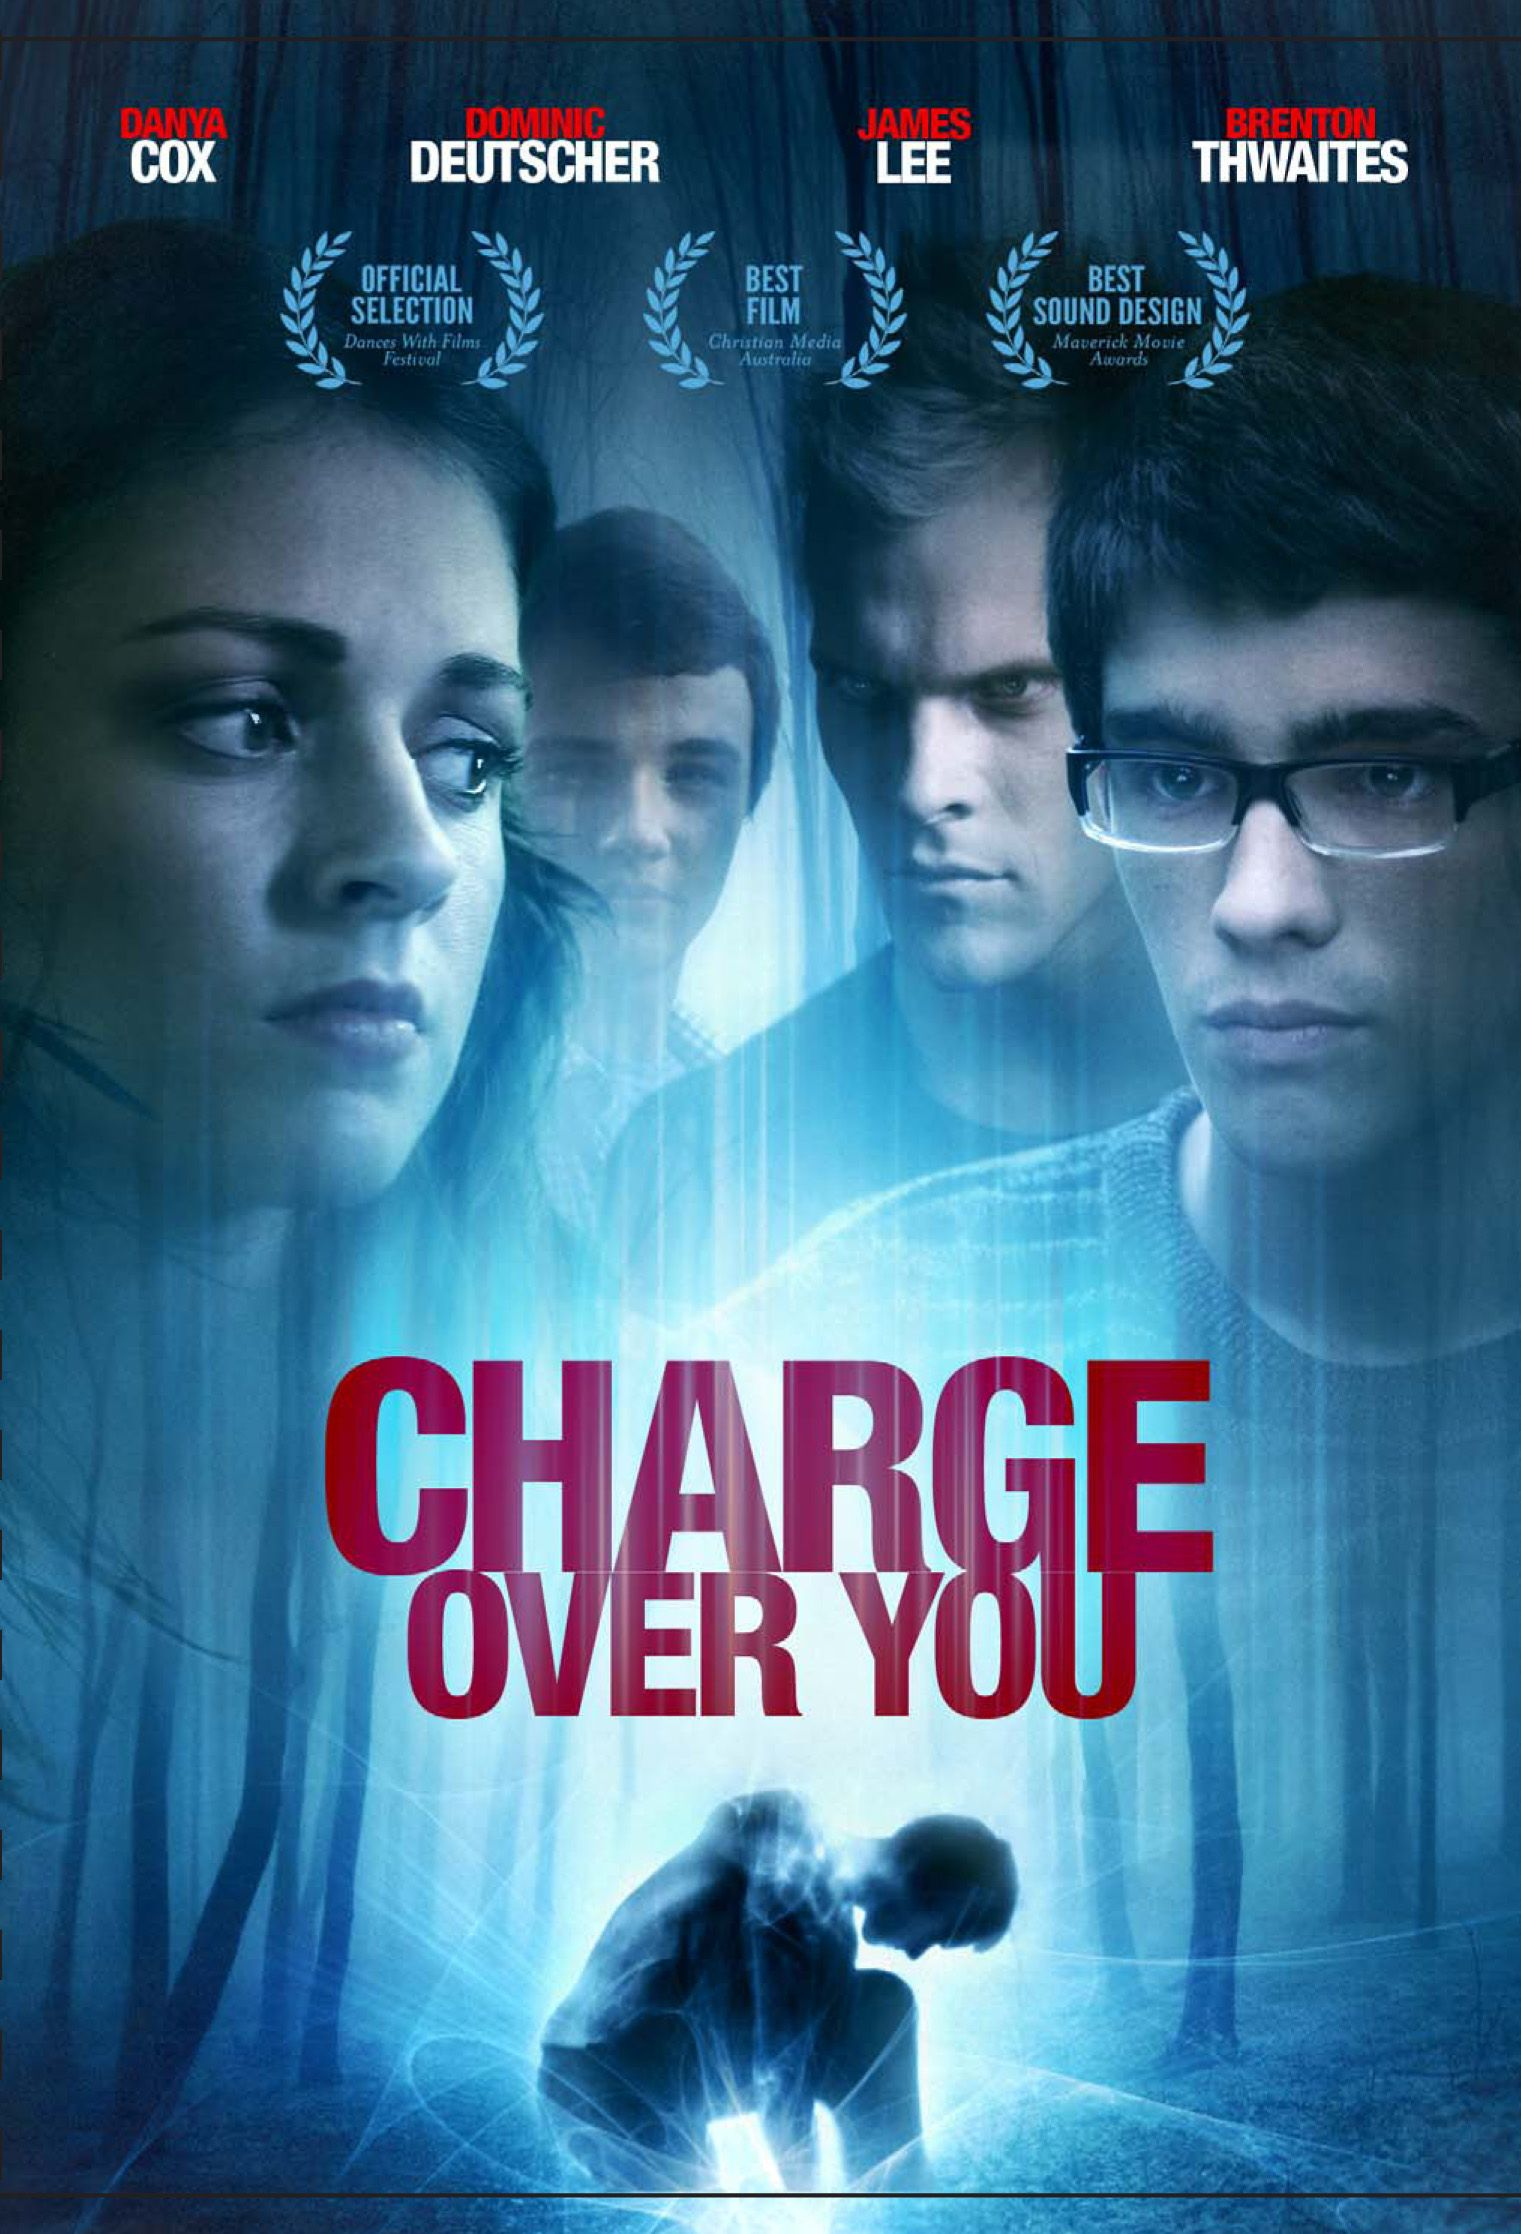 Charge over you christian movie film on dvd cfdb